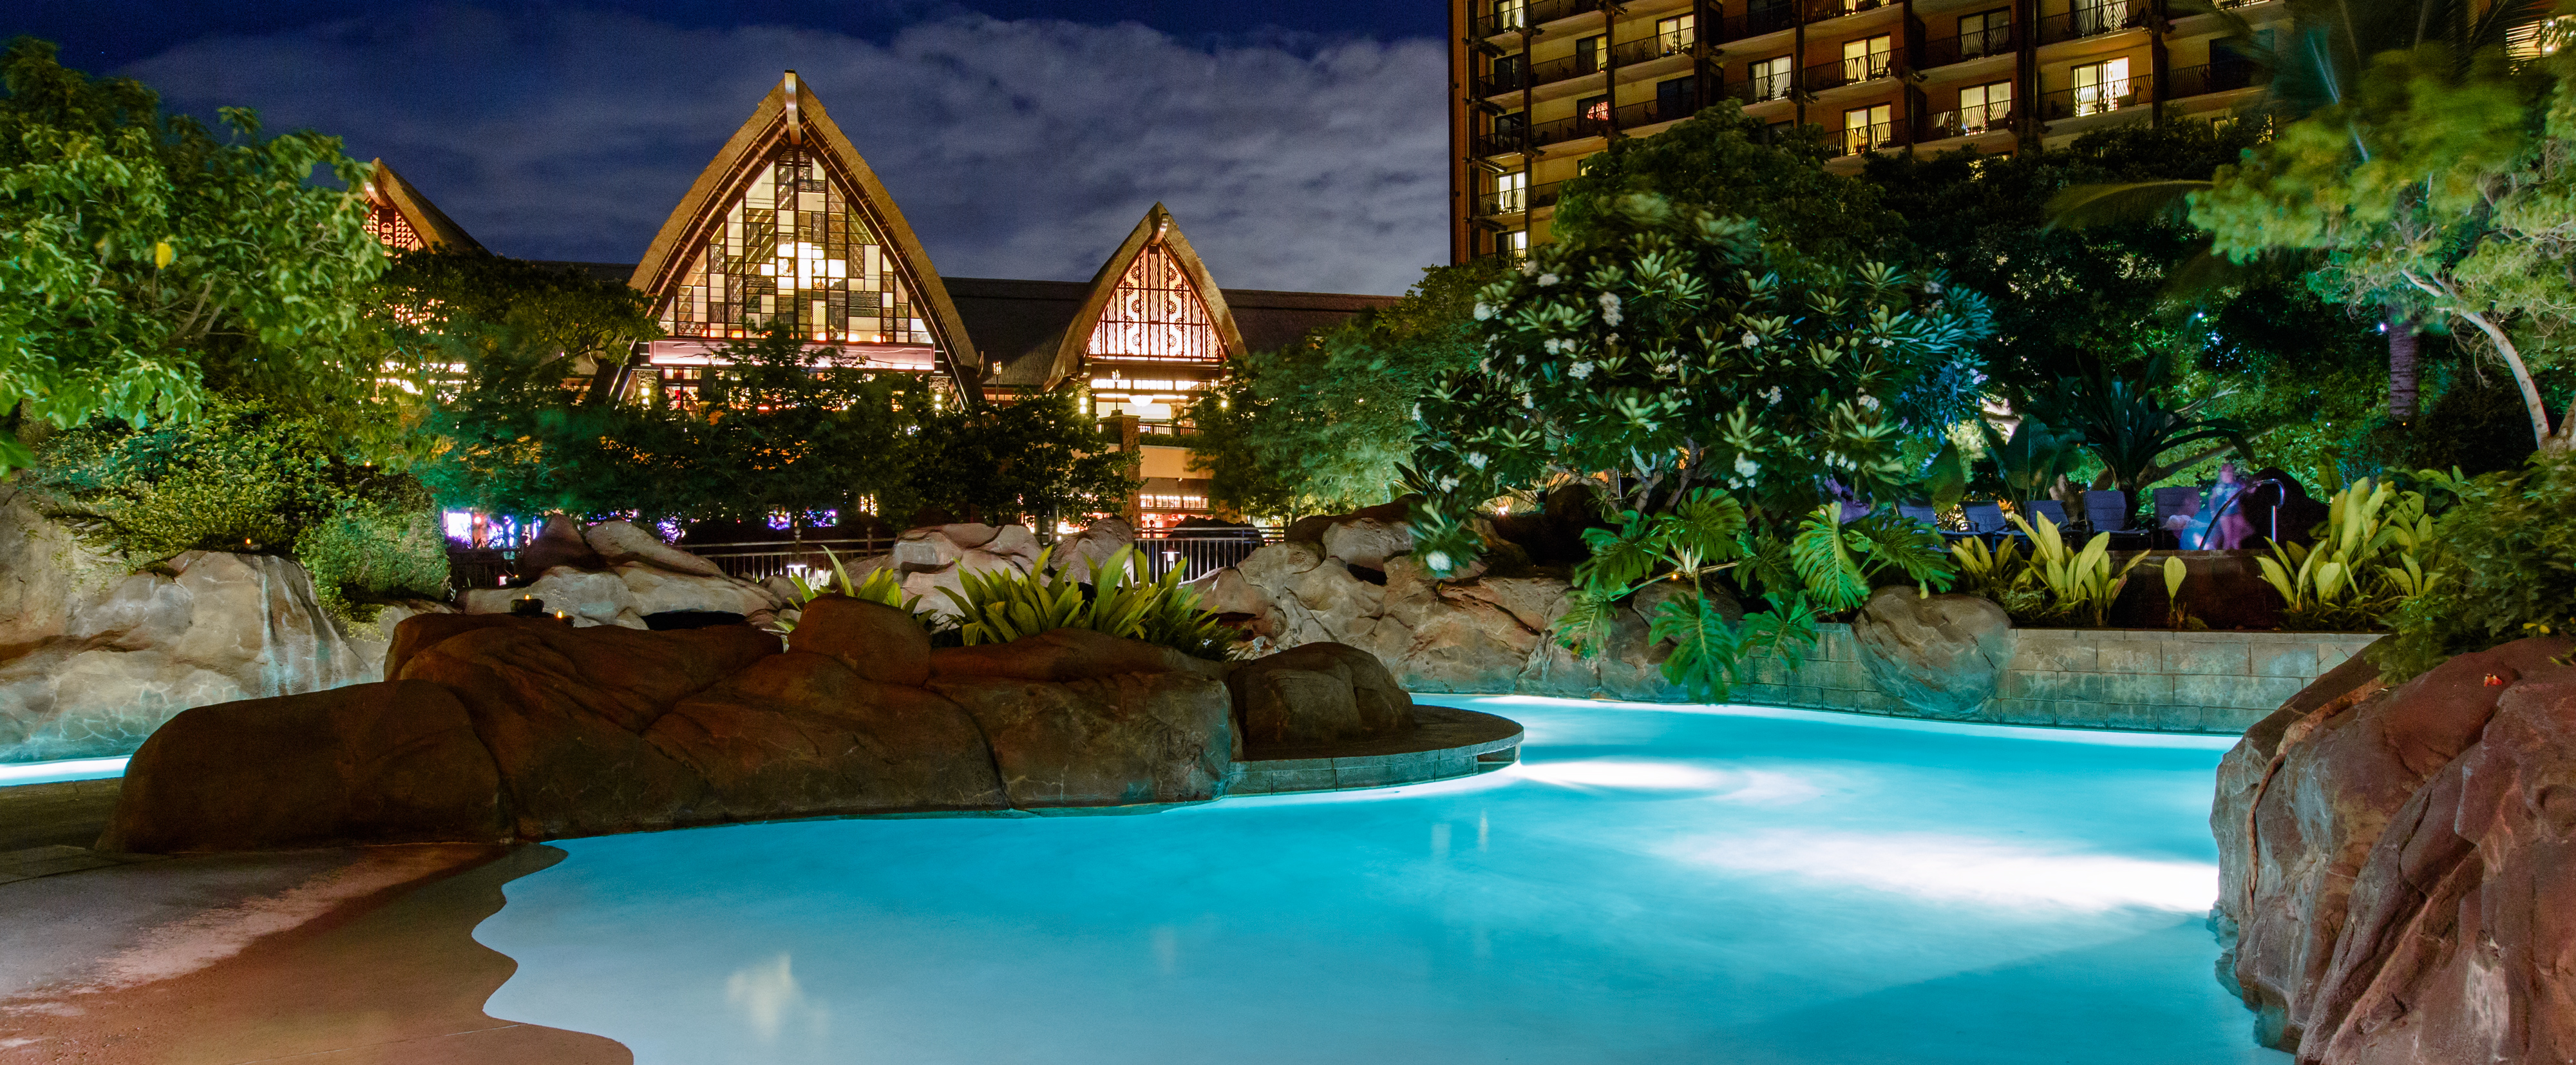 A section of the lazy river lit up at night, with the peaked roofs of the Resort's main building beyond